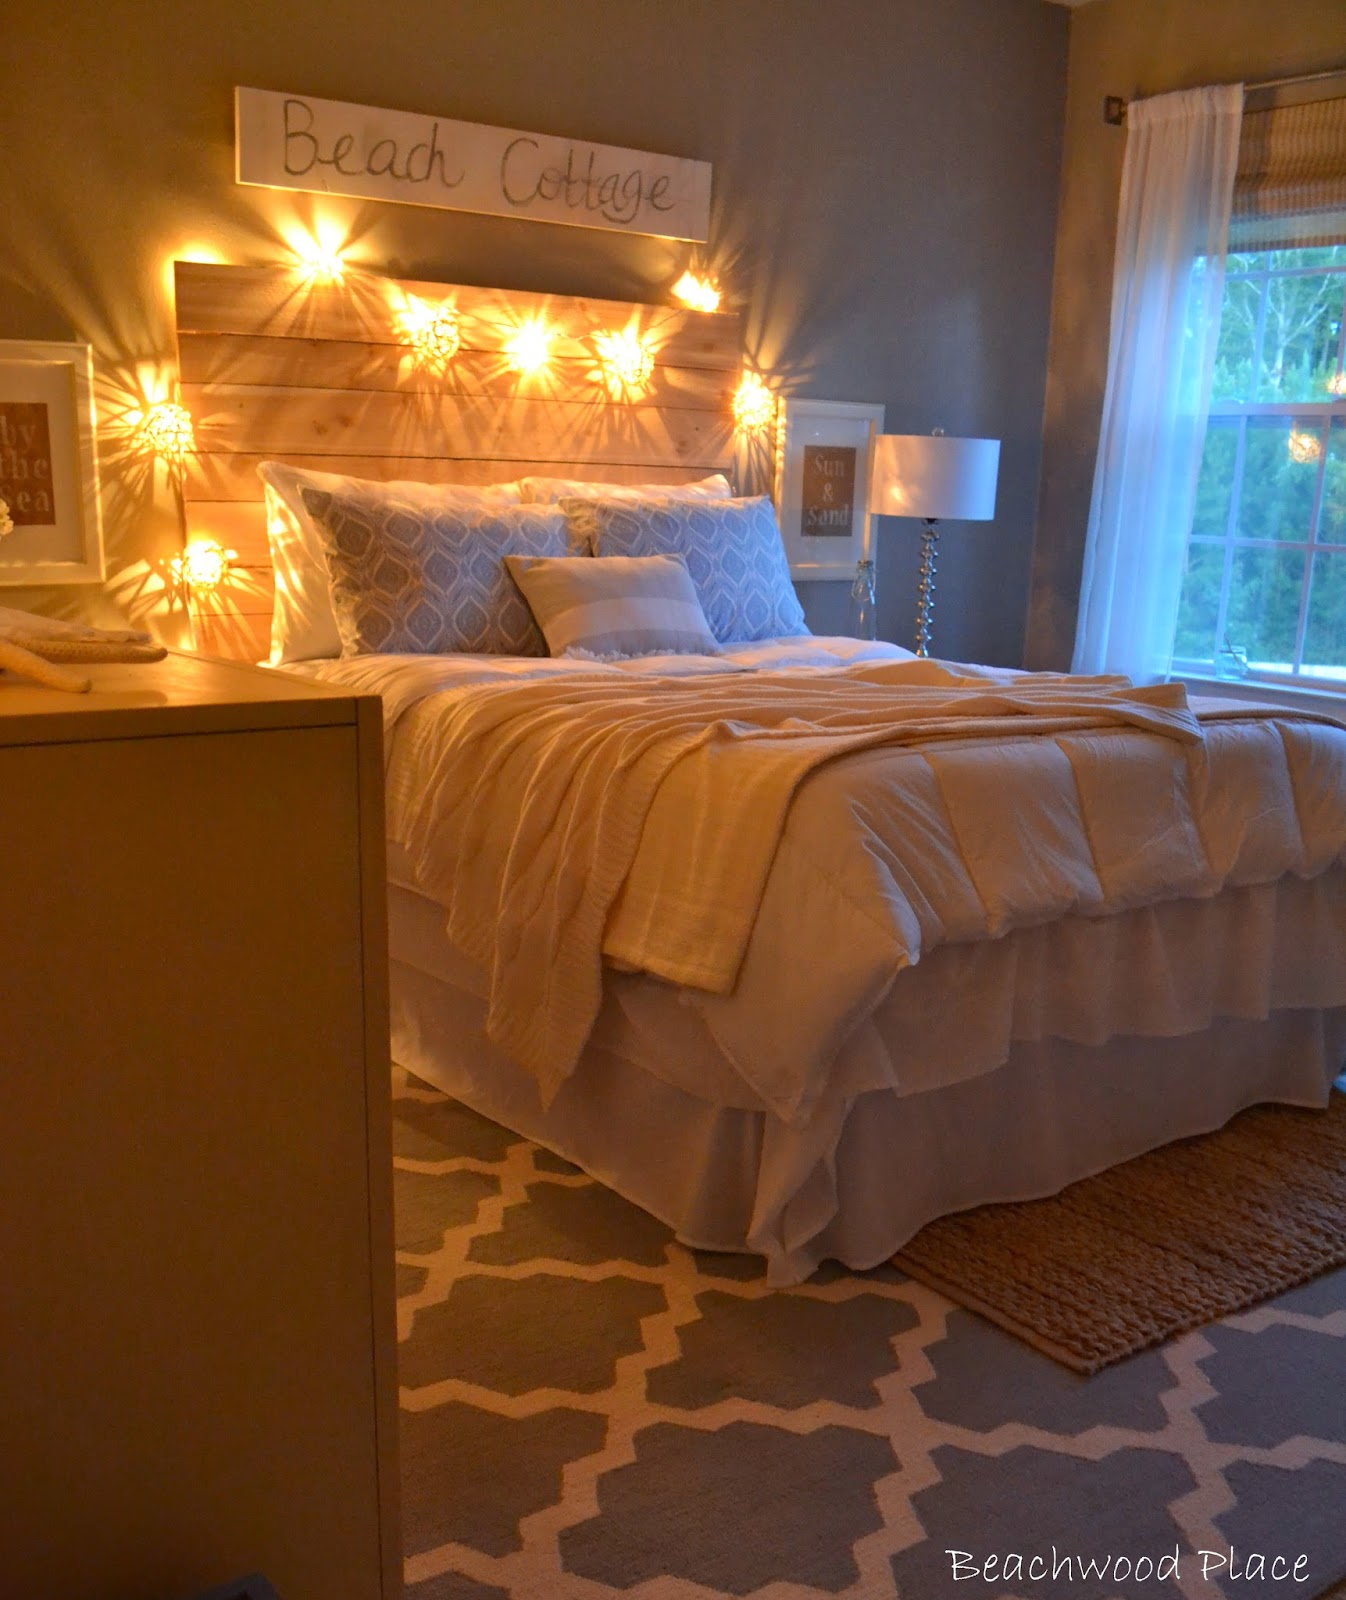 beachwood place beach cottage guest room